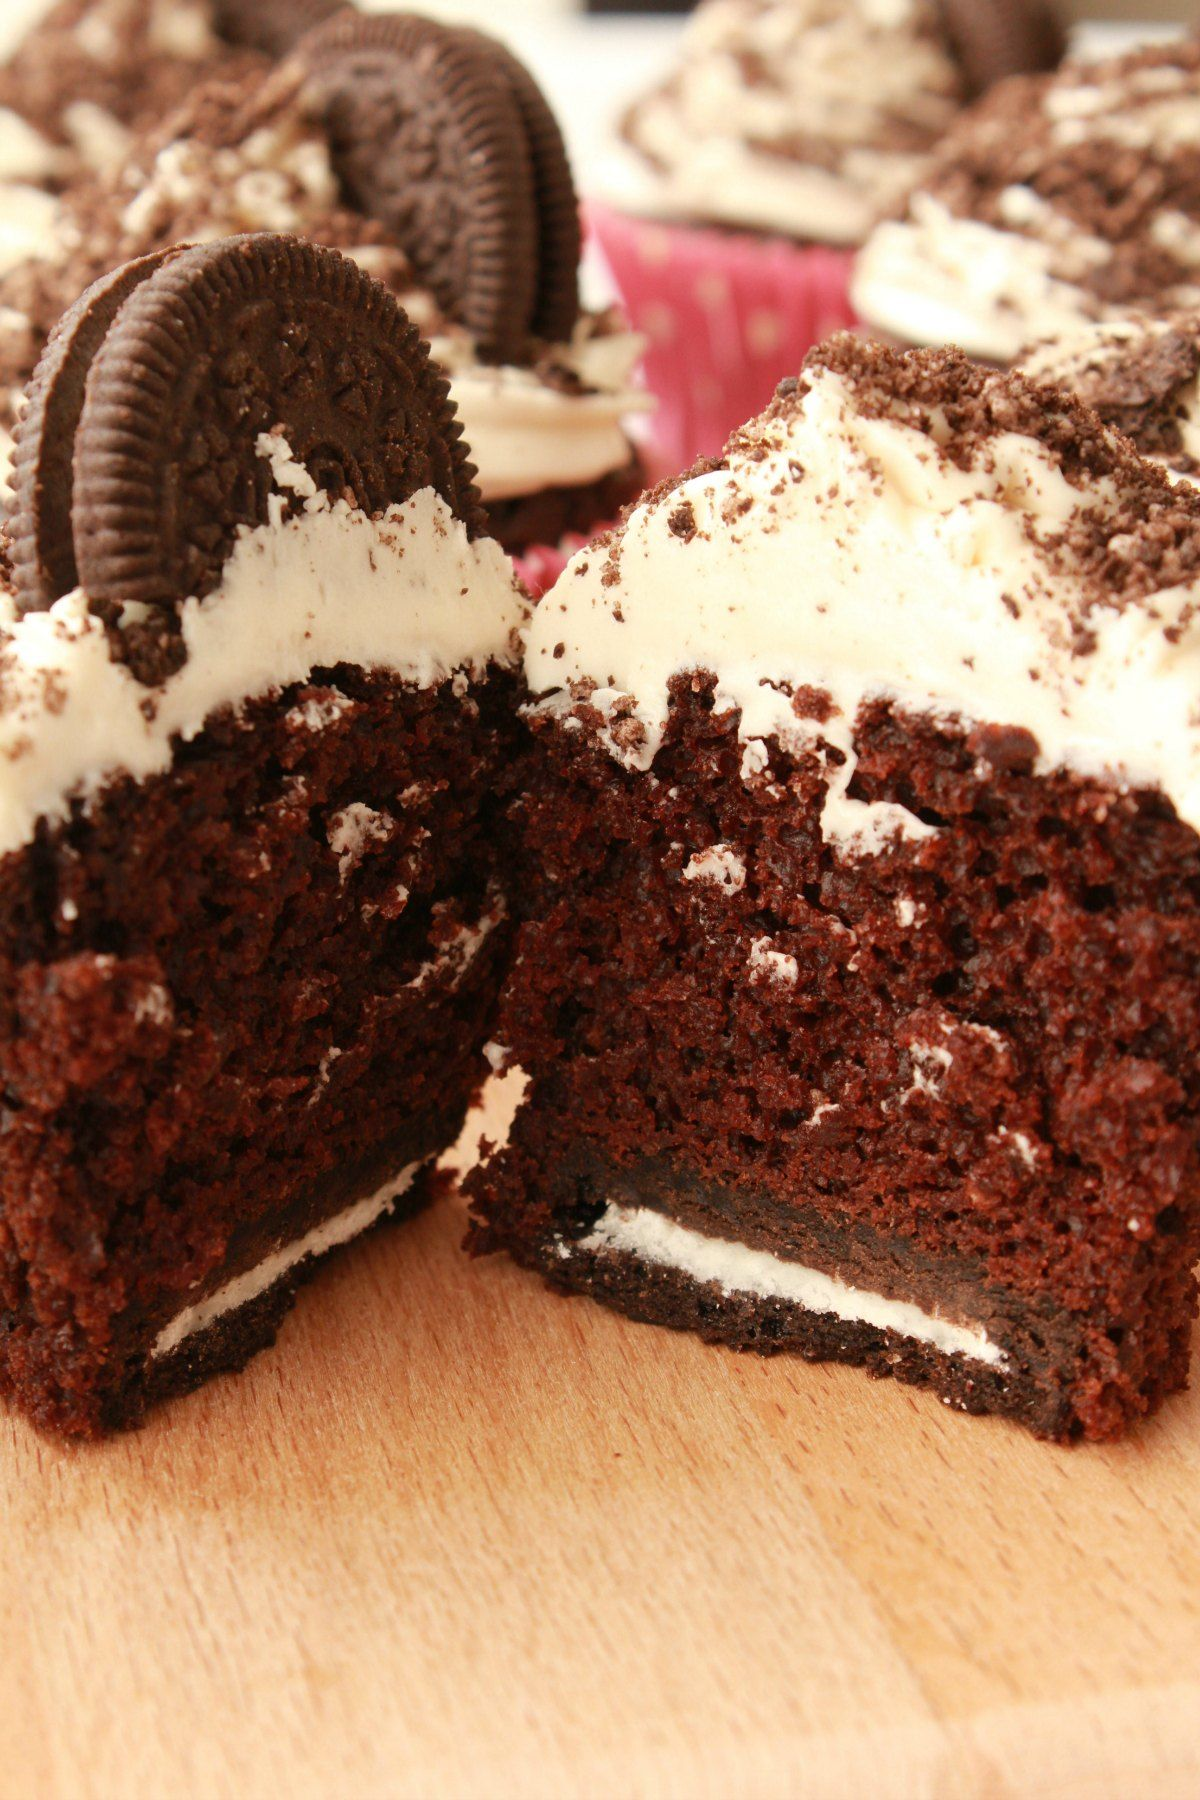 Rich And Moist Vegan Oreo Cupcakes With Vanilla Frosting Oreo Sprinkles And An Entire Oreo Cookie Oreo Cupcakes Vegan Chocolate Cupcakes Vegan Dessert Recipes